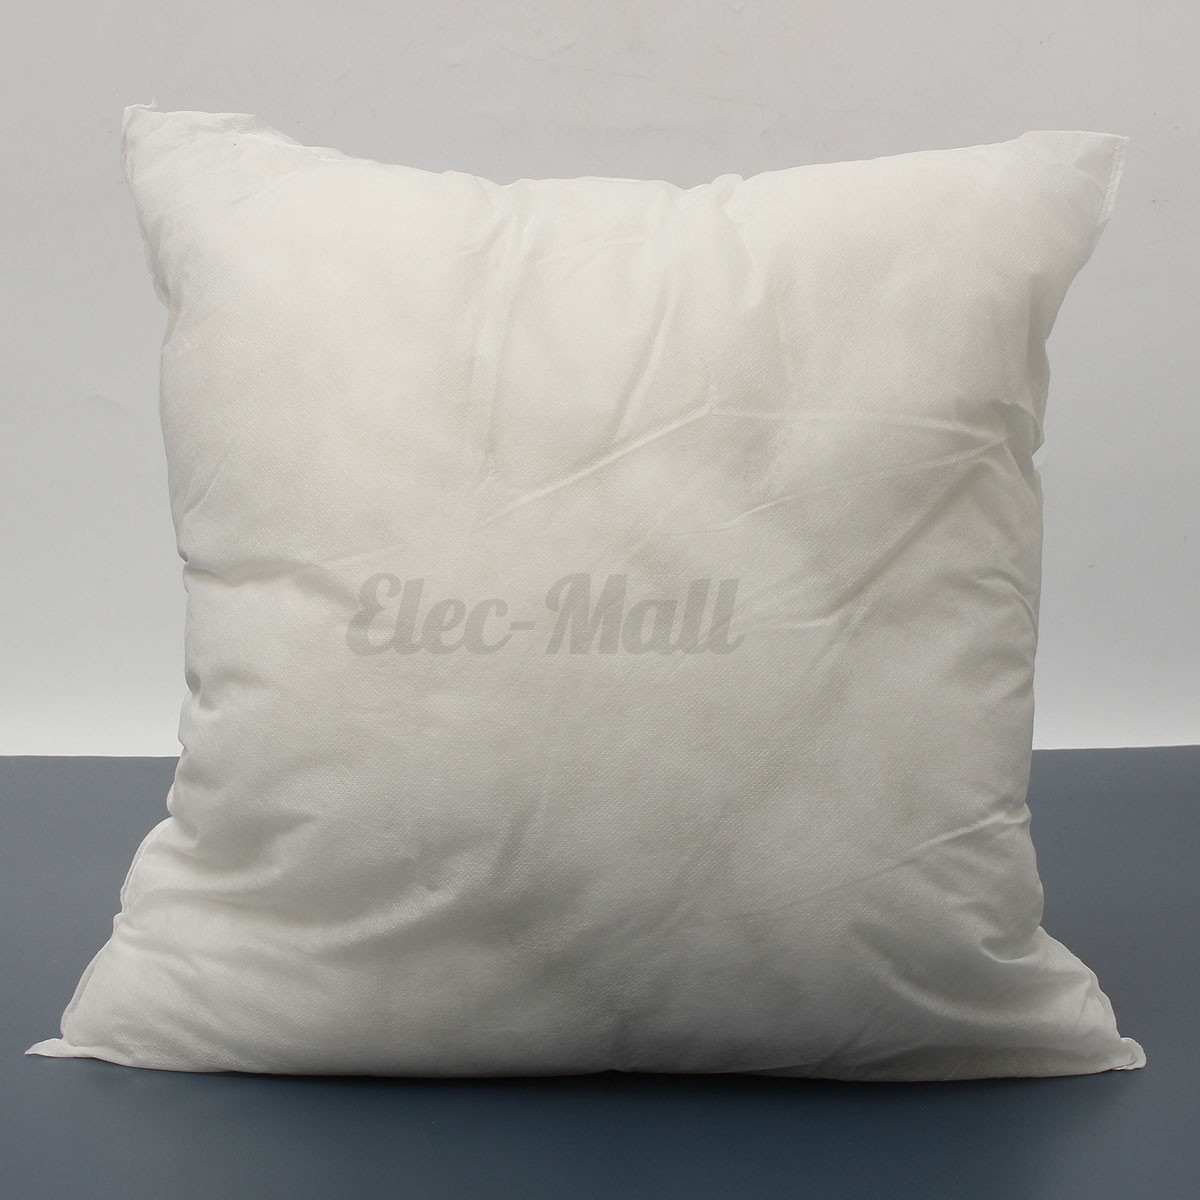 sofa and hold pillow - photo #23